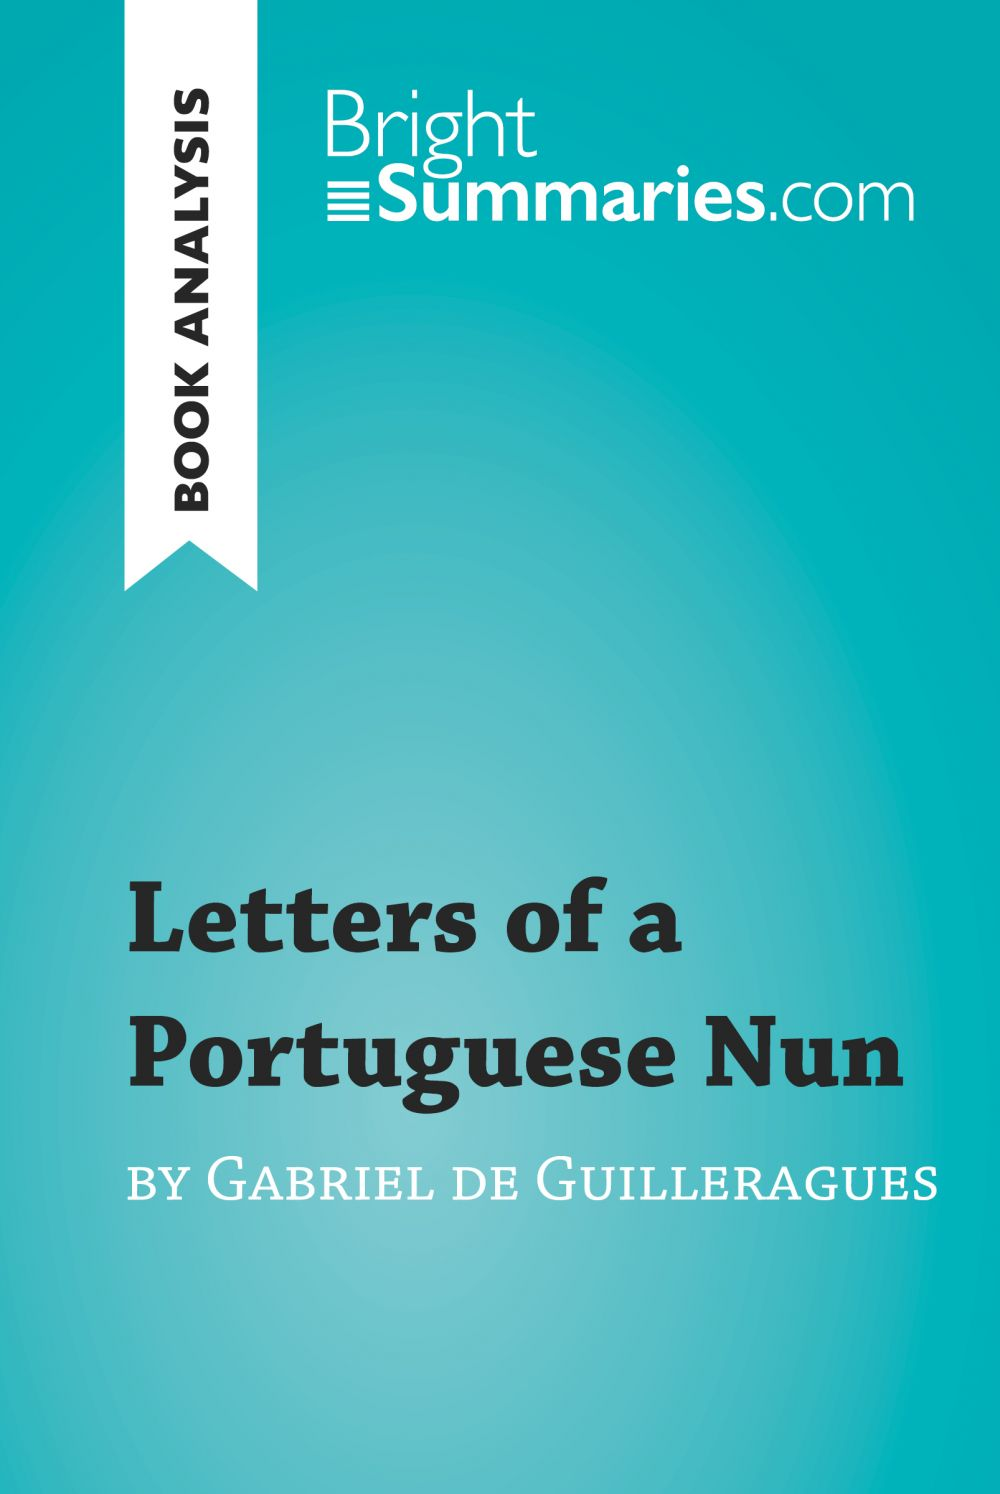 Letters of a Portuguese Nun by Gabriel de Guilleragues (Book Analysis)